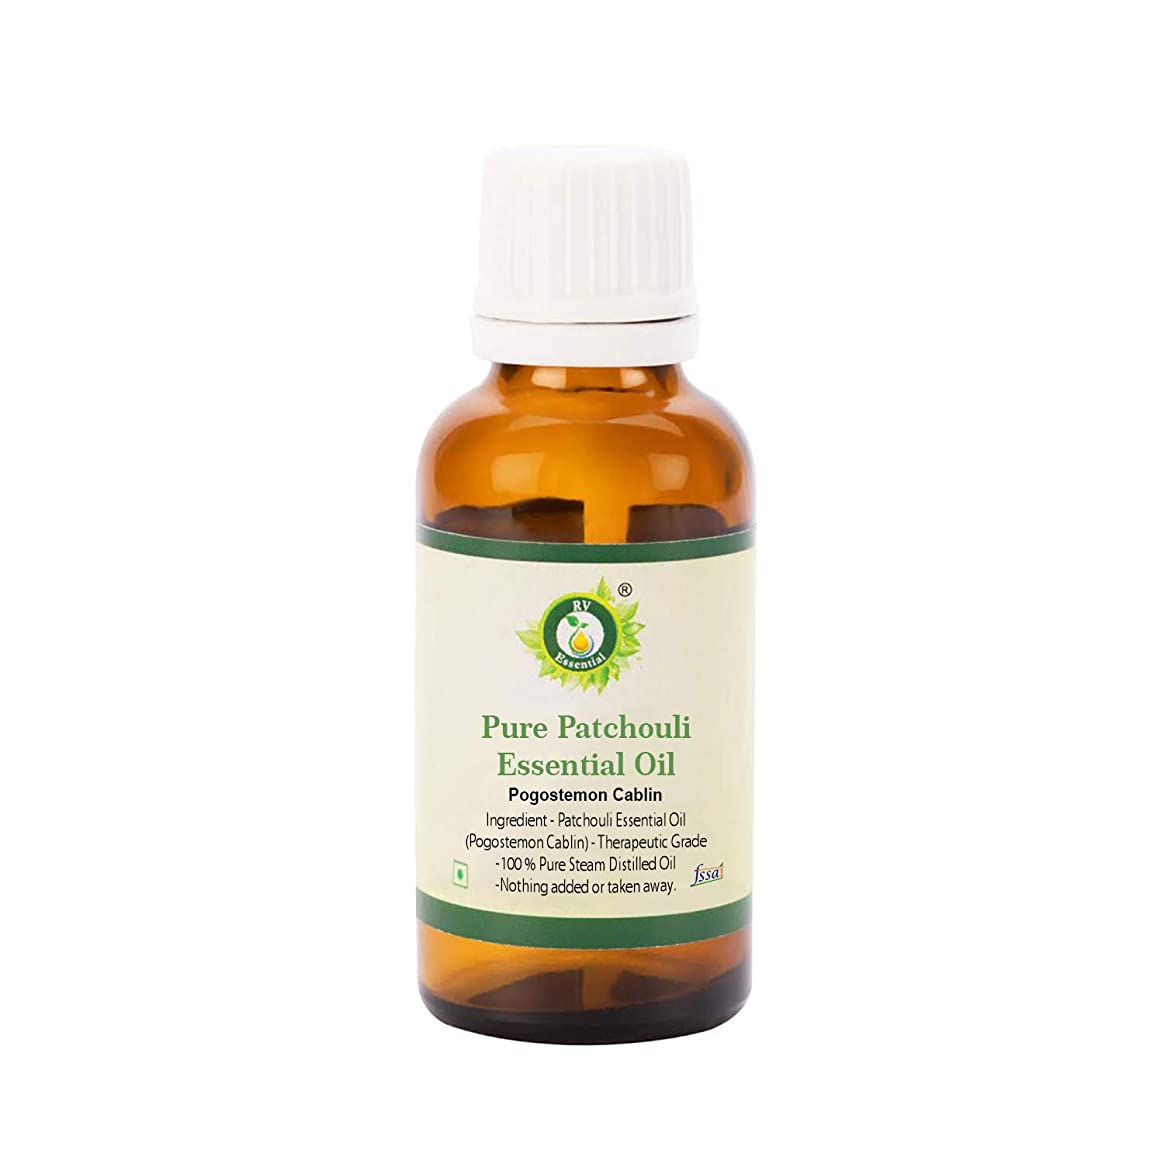 R V Essential ピュアパチュリーエッセンシャルオイル30ml (1.01oz)- Pogostemon Cablin (100%純粋&天然スチームDistilled) Pure Patchouli Essential Oil